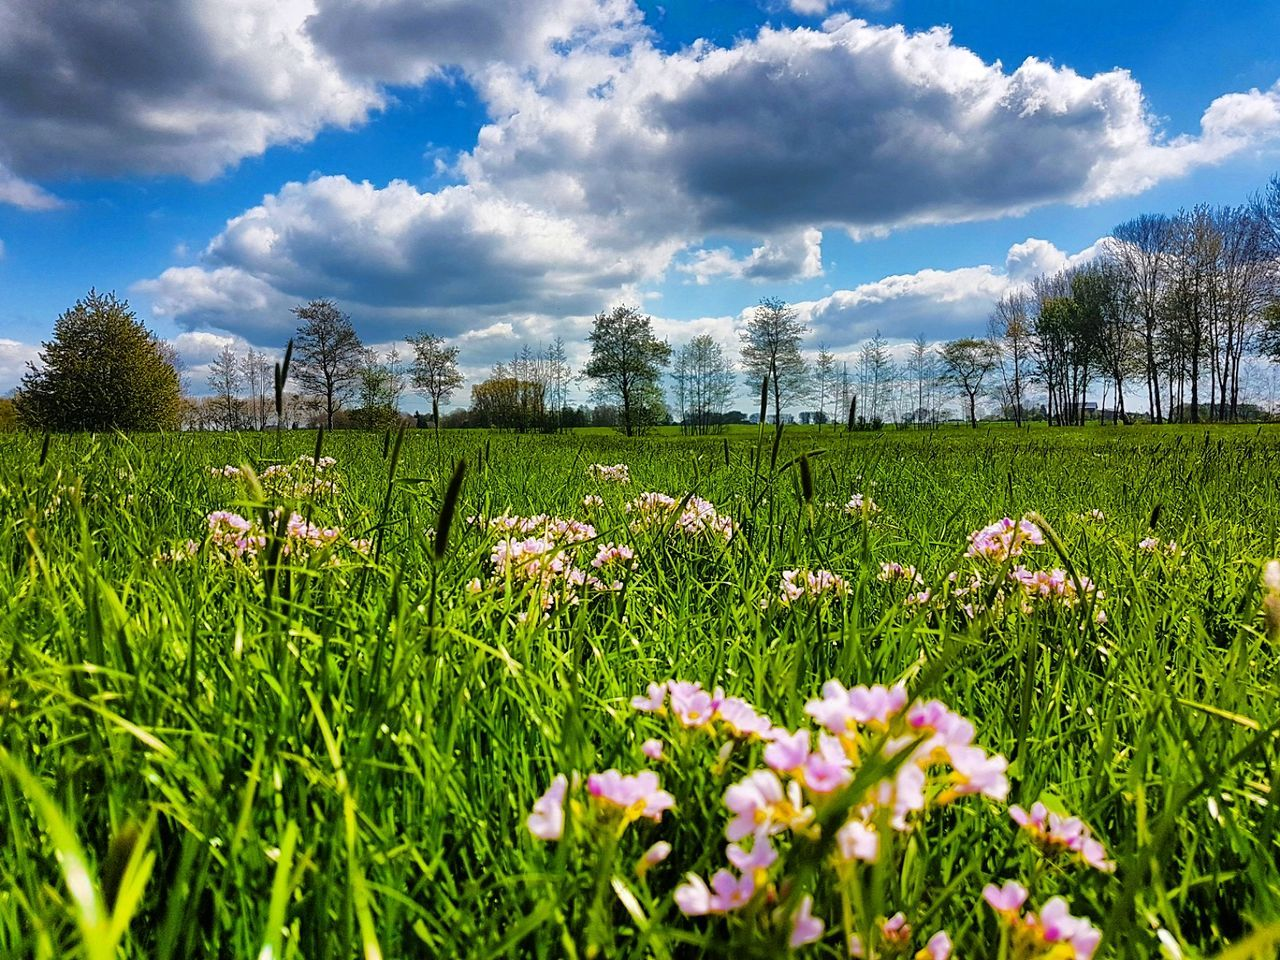 cloud - sky, growth, nature, sky, beauty in nature, field, grass, tranquility, flower, tranquil scene, scenics, plant, day, outdoors, no people, green color, landscape, rural scene, mountain, fragility, freshness, tree